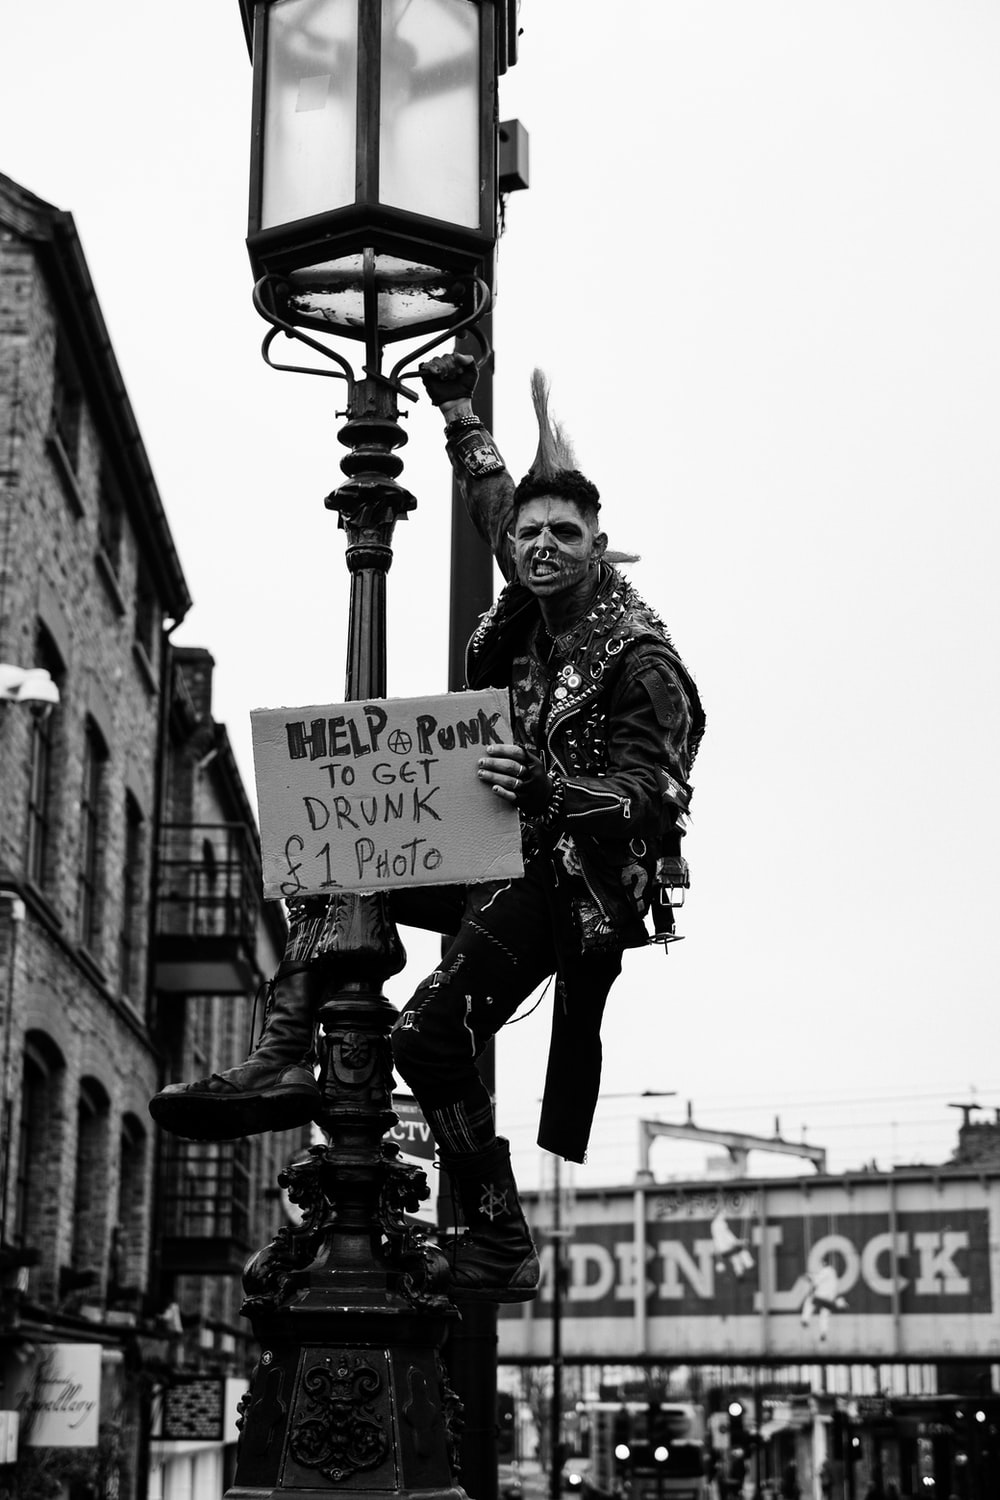 grayscale photo of man in jacket and pants holding signage